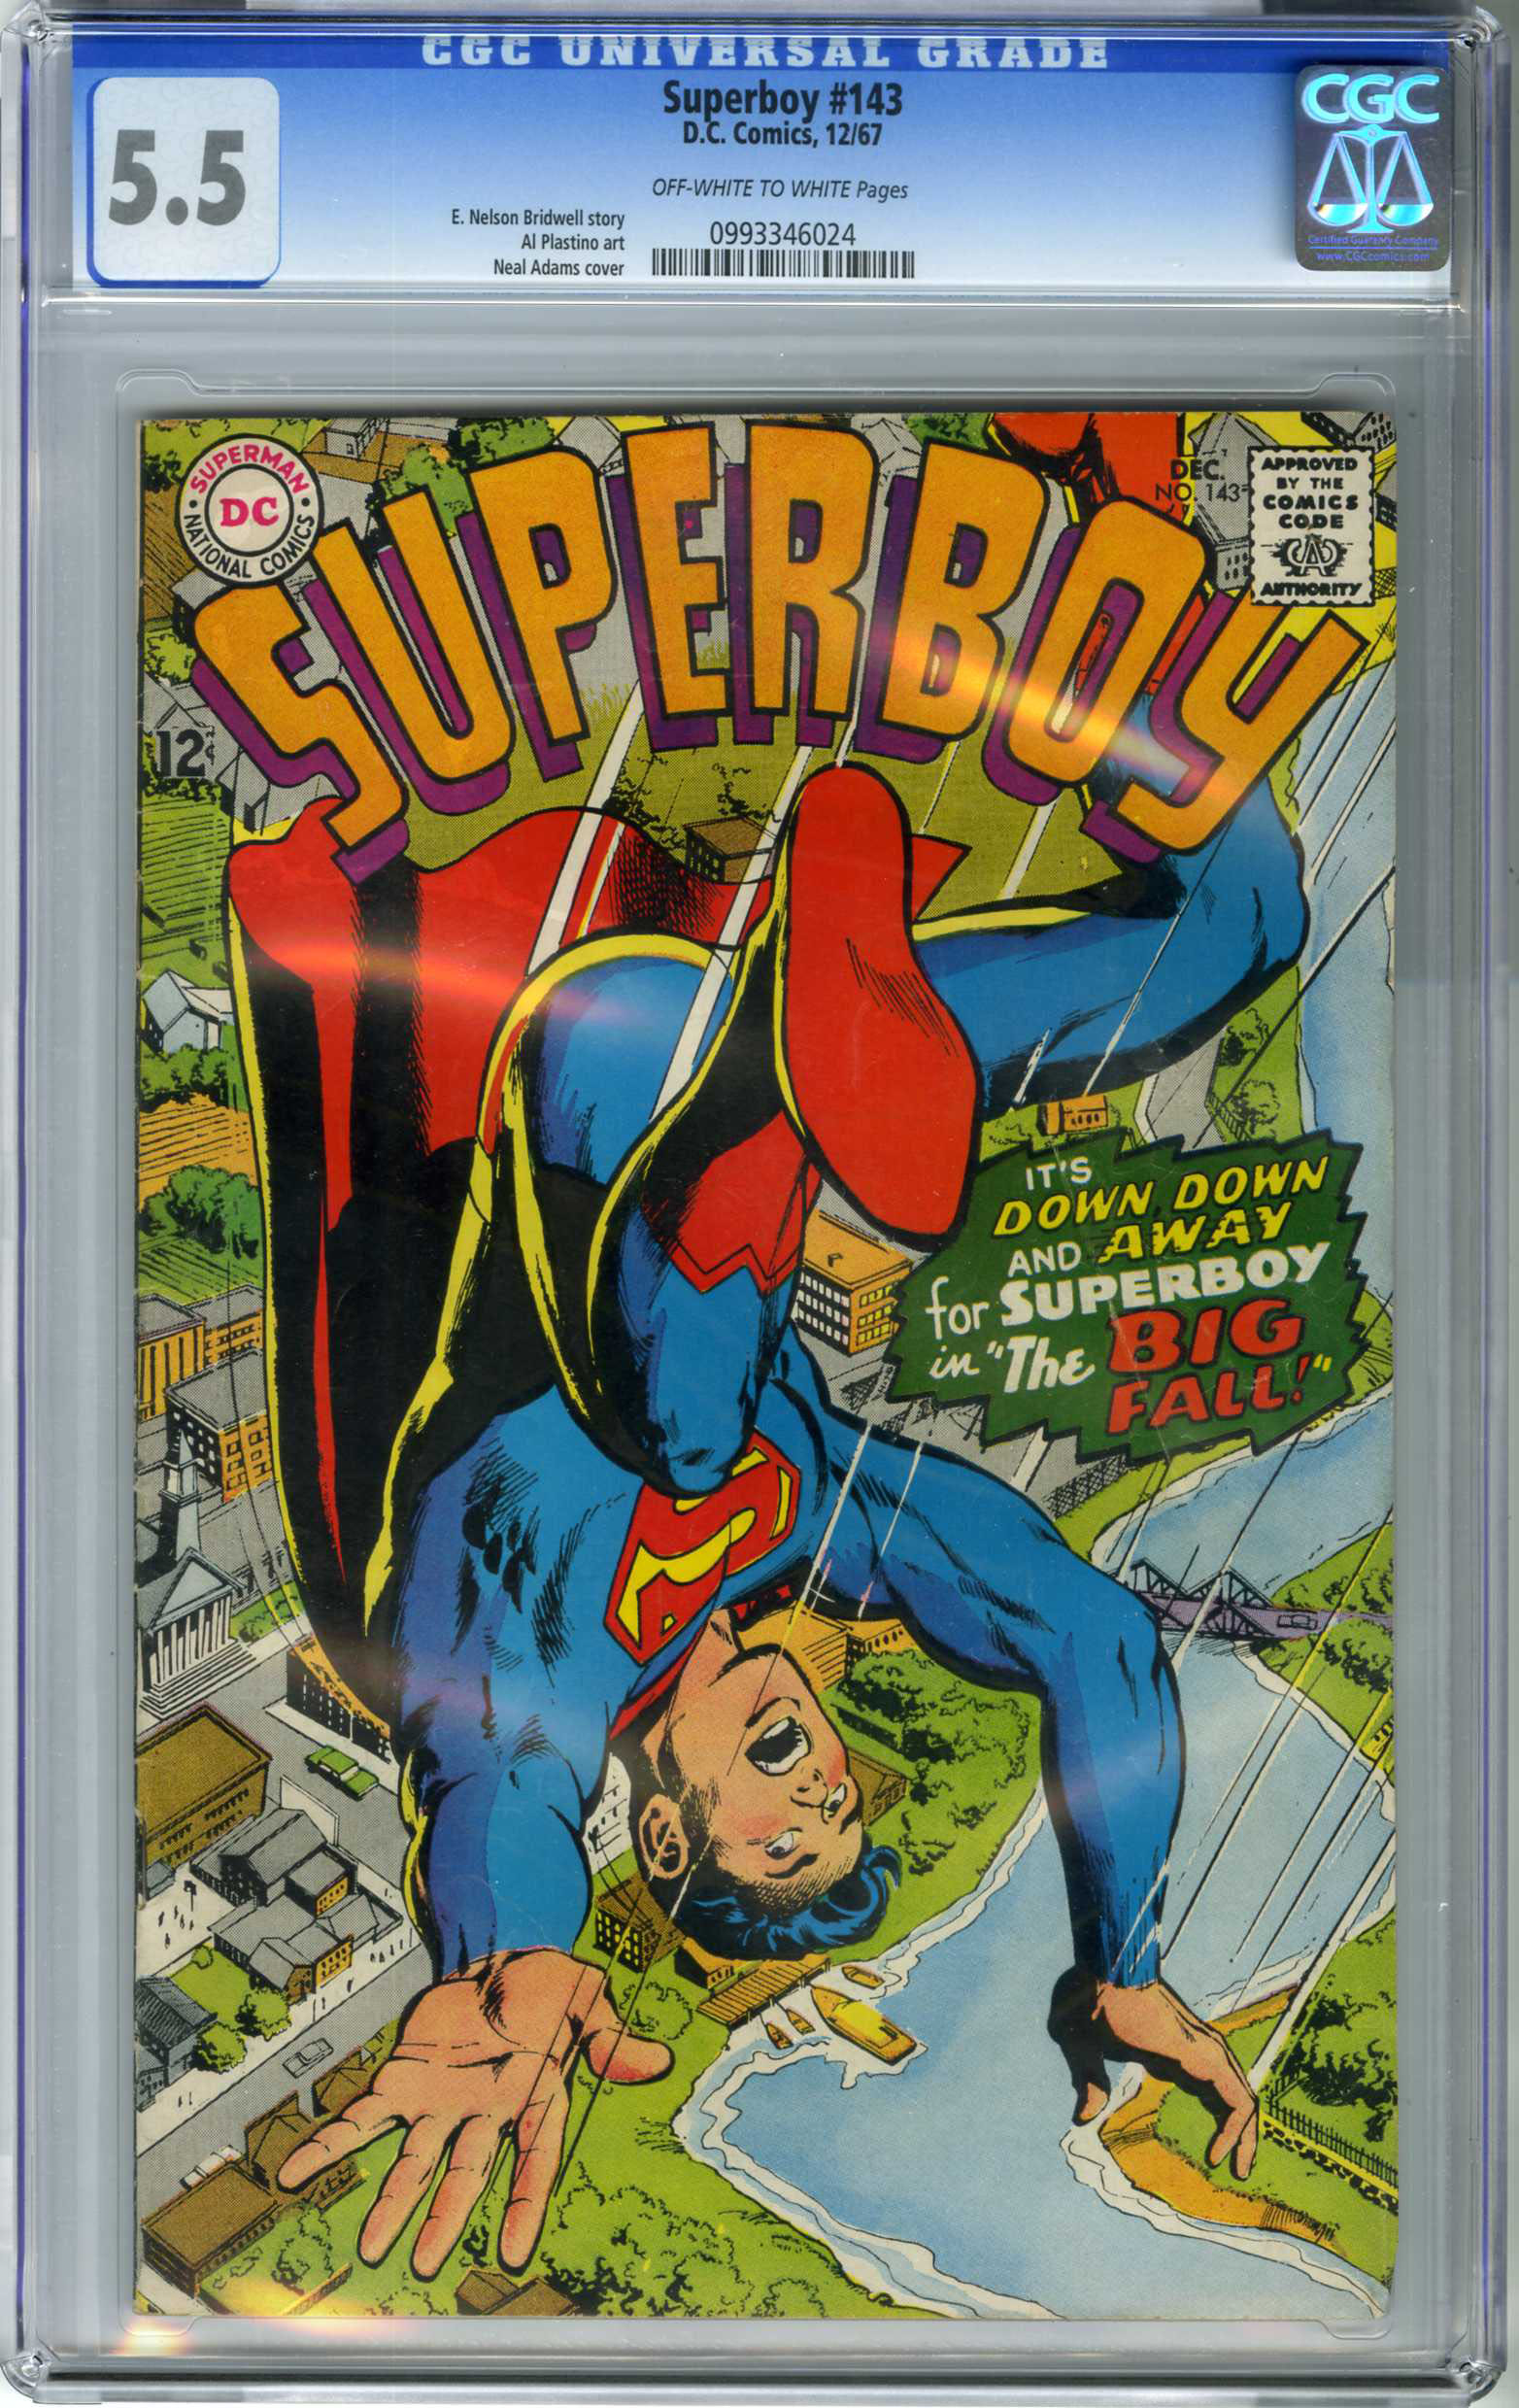 SUPERBOY #143 (1967) CGC FN- 5.5 OWW Pages / NEAL ADAMS COVER